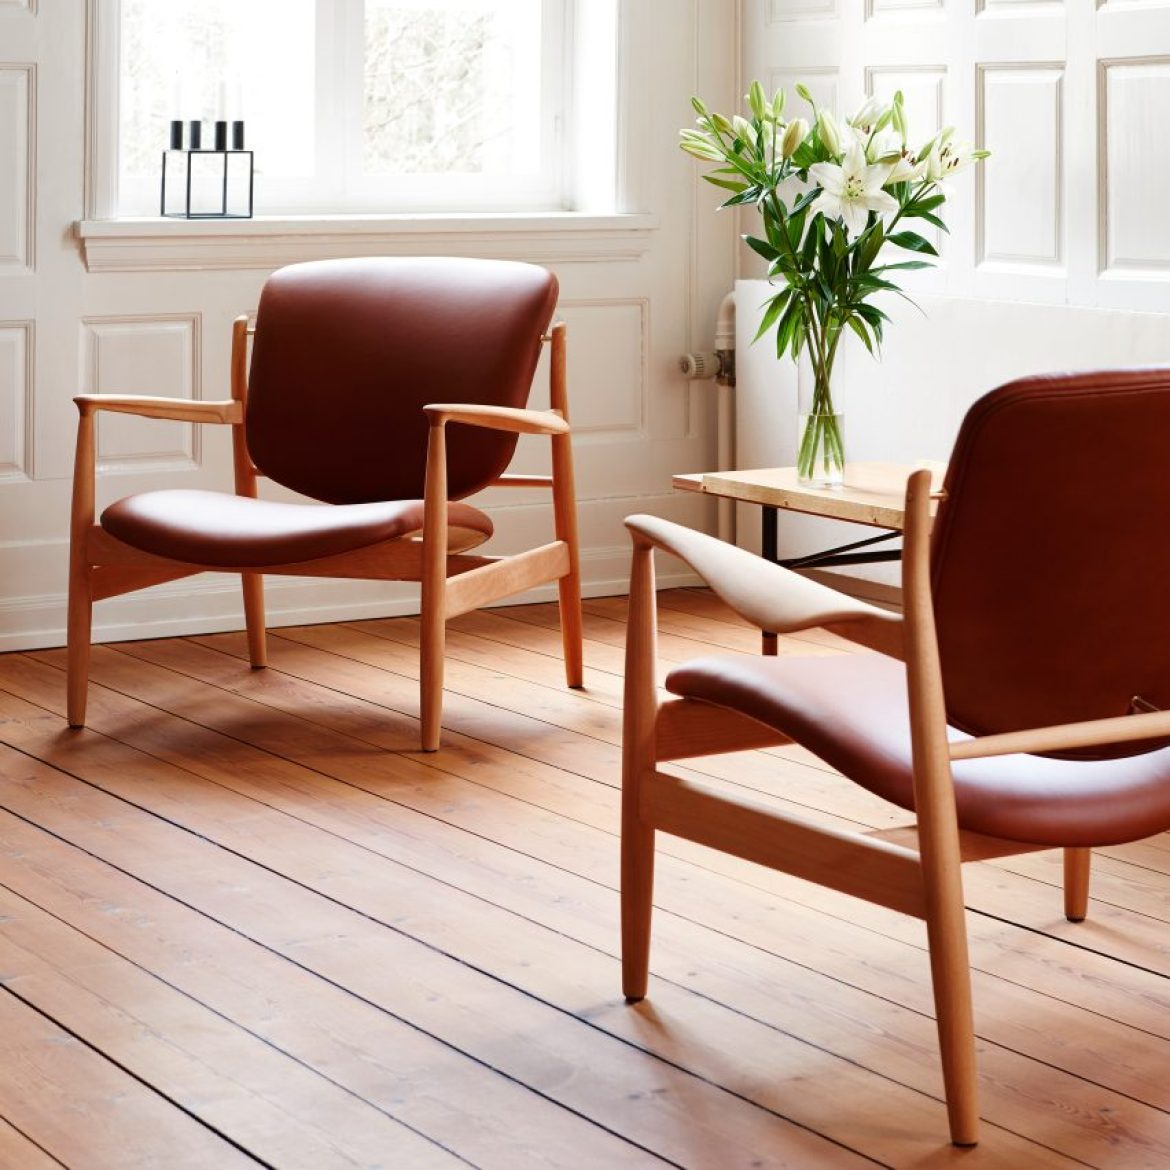 christmas-furniture-reissue-france-chair-finn-juhl-one-collection-design_dezeen_sq